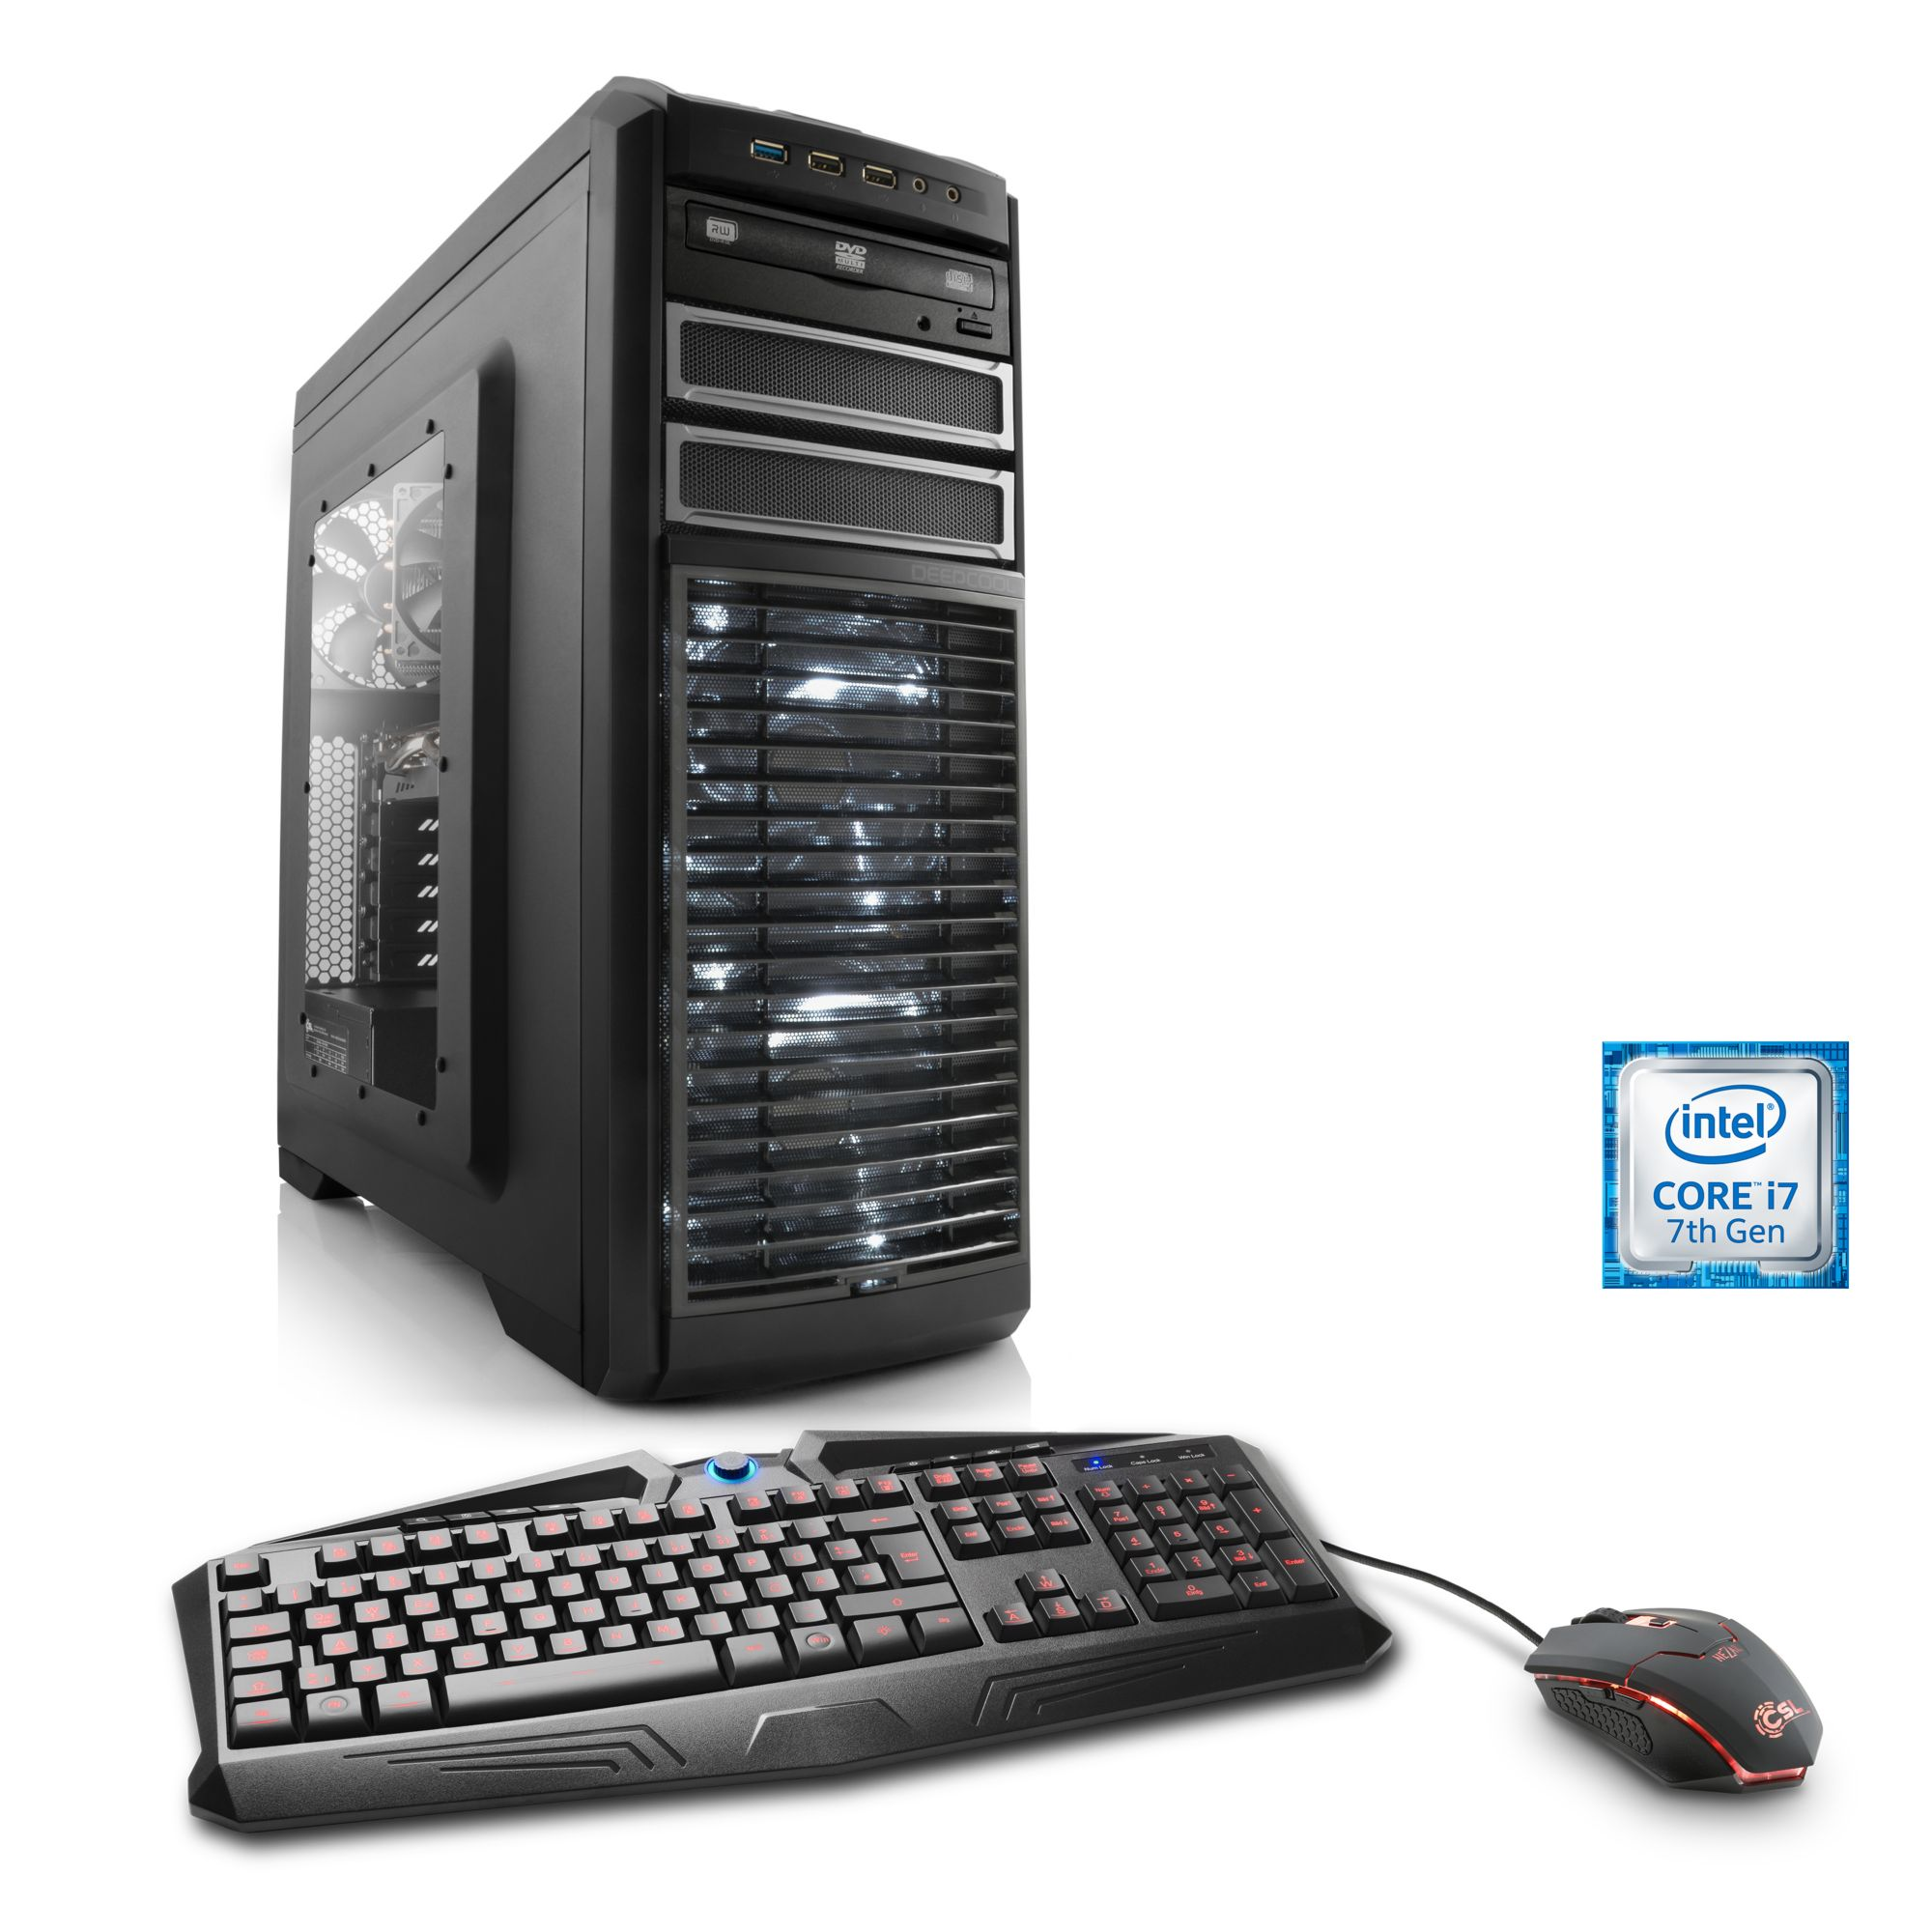 CSL  Extreme Gaming PC | i7-7700K | GTX 1080 | 16GB DDR4 | 240GB SSD »Victoriatus T7095 Windows 10«